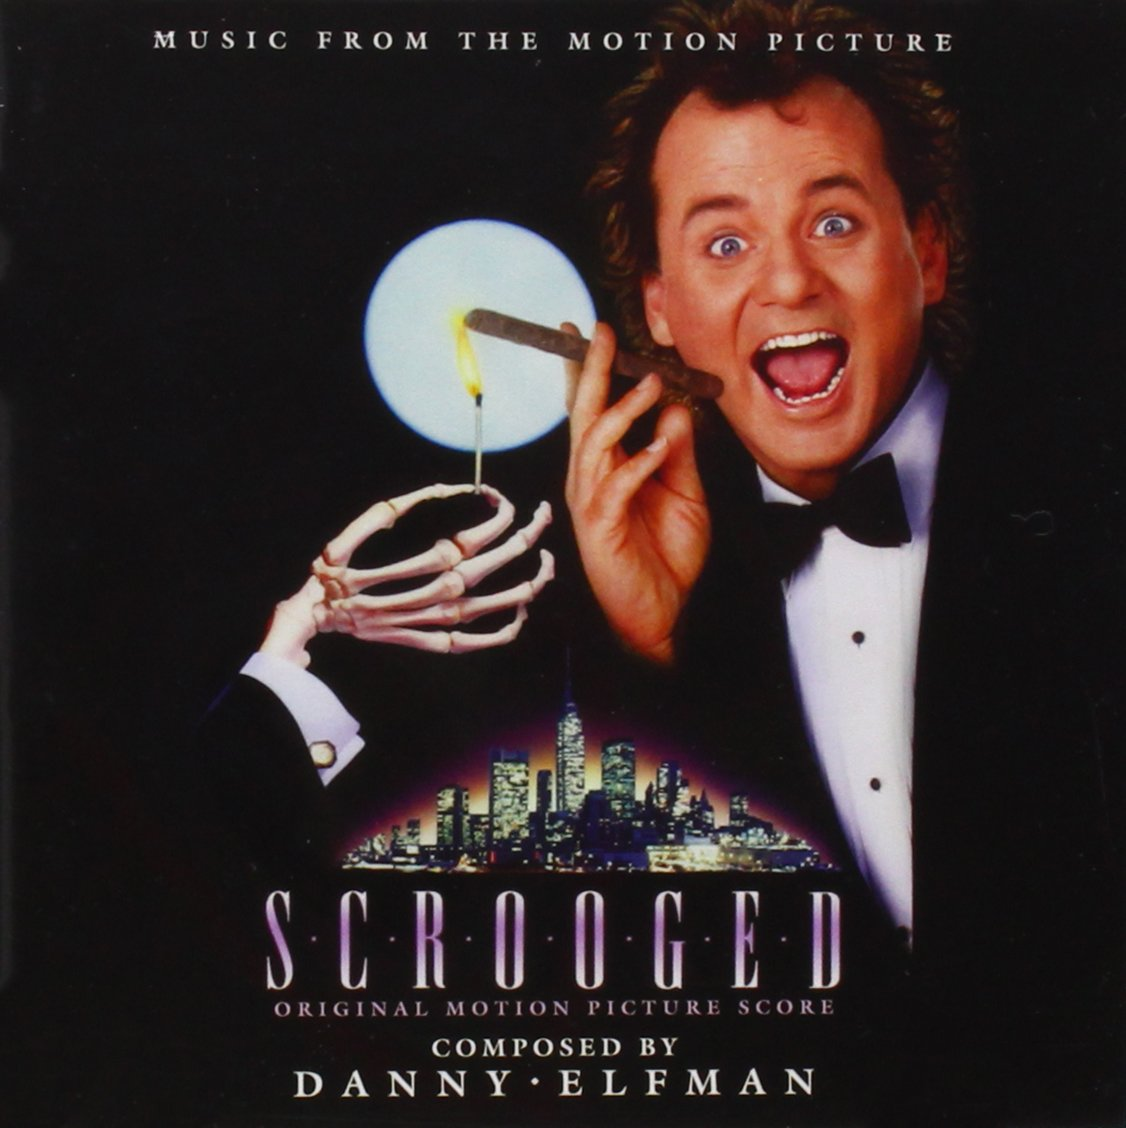 Outlet Max 68% OFF SALE Scrooged